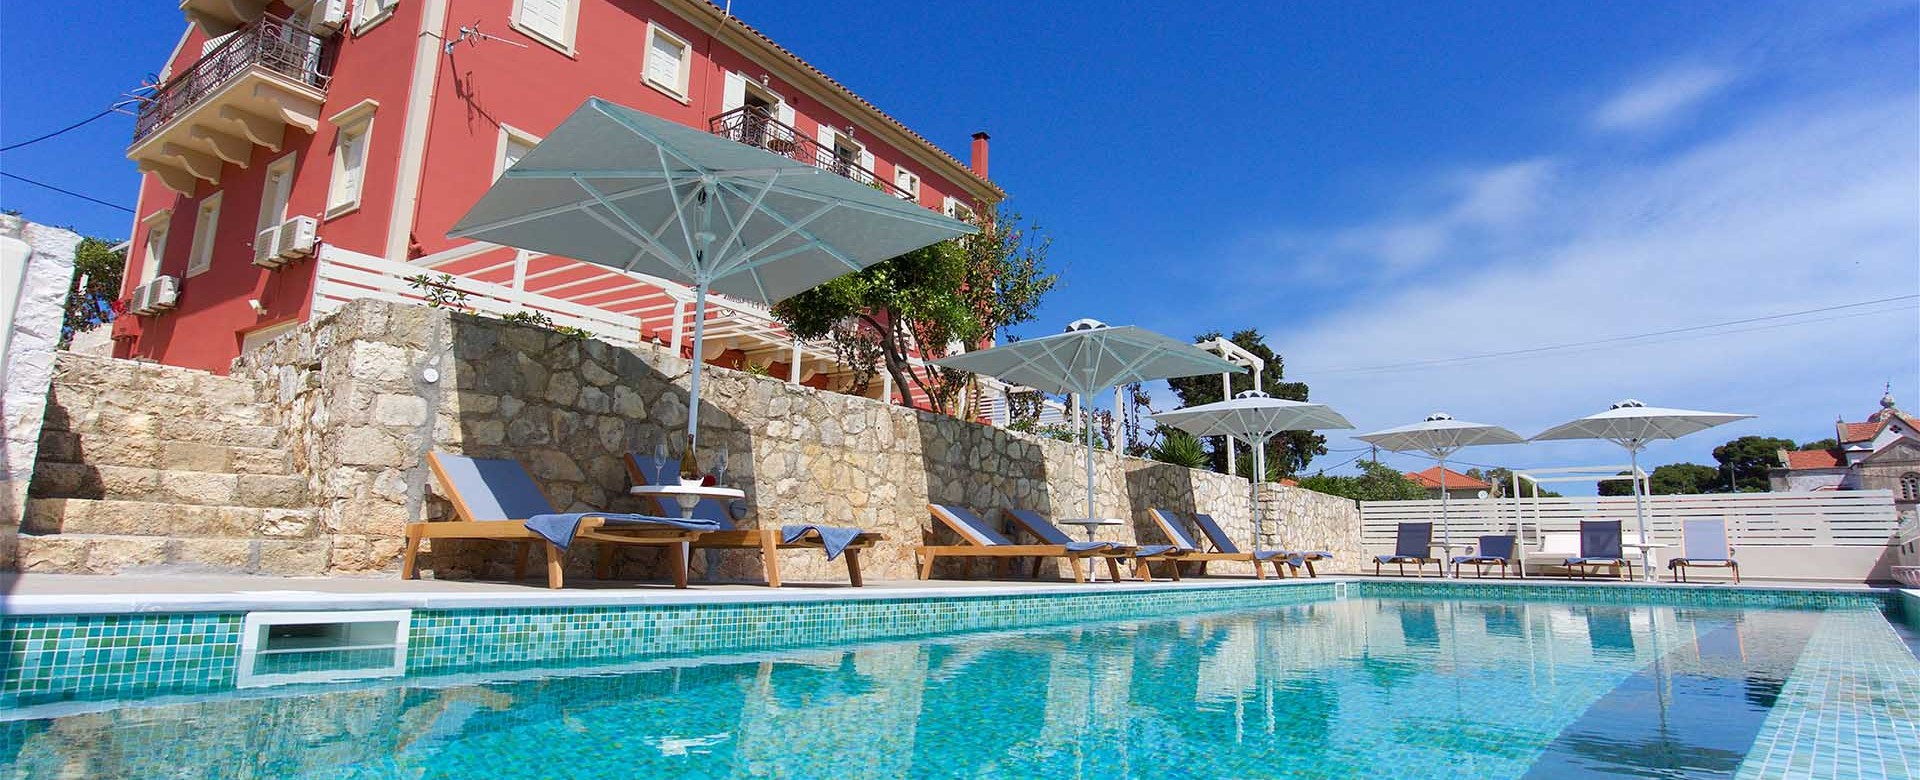 Relax in the pool and take in the sky during your holiday to Magnolia Apartments, Fiscardo, Kefalonia, Greek Islands